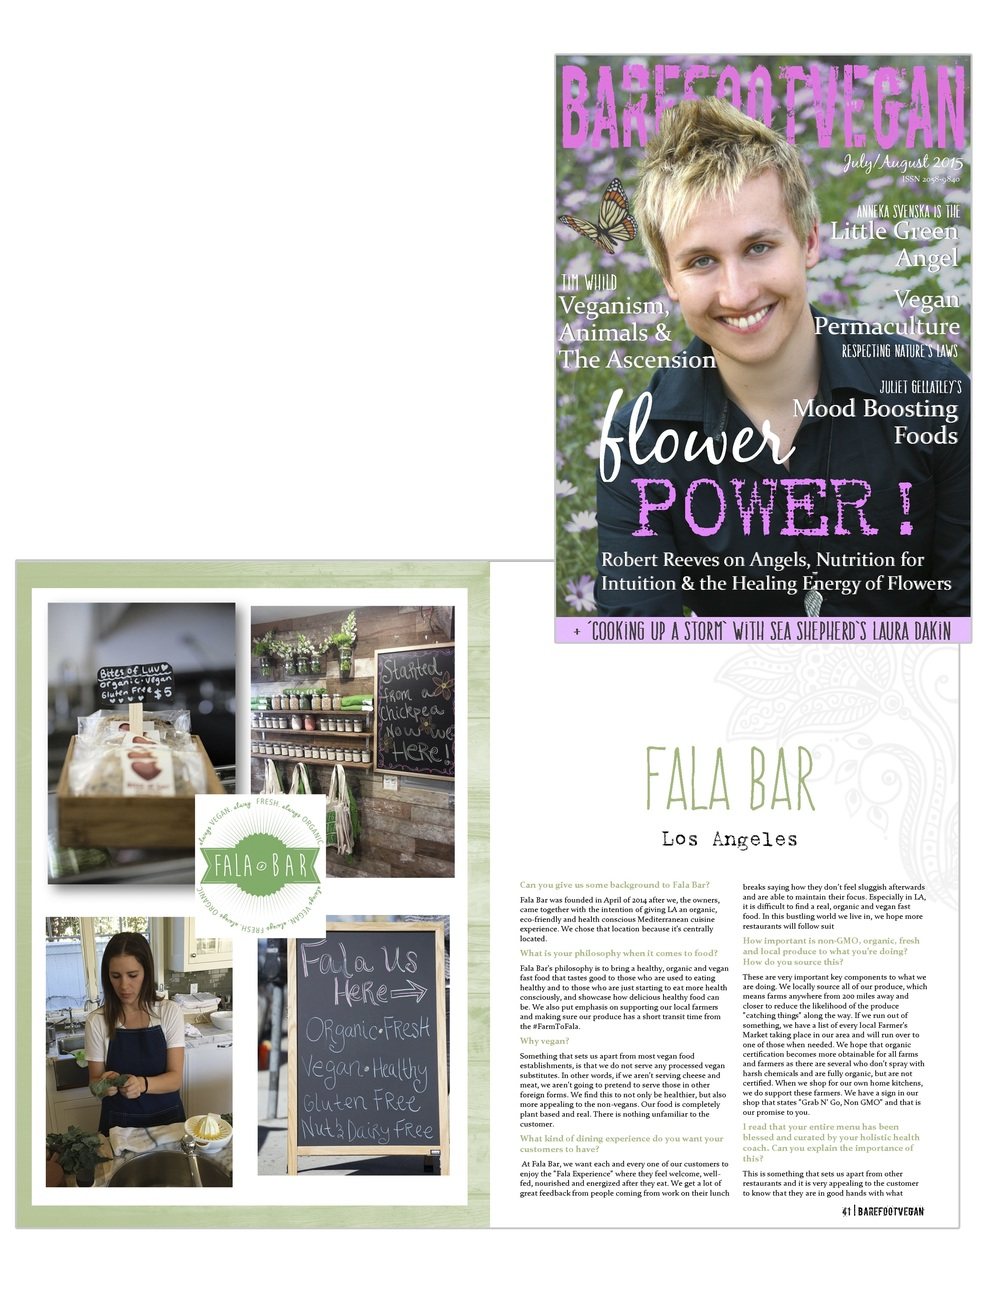 Report about Fala Bar / Barefootvegan